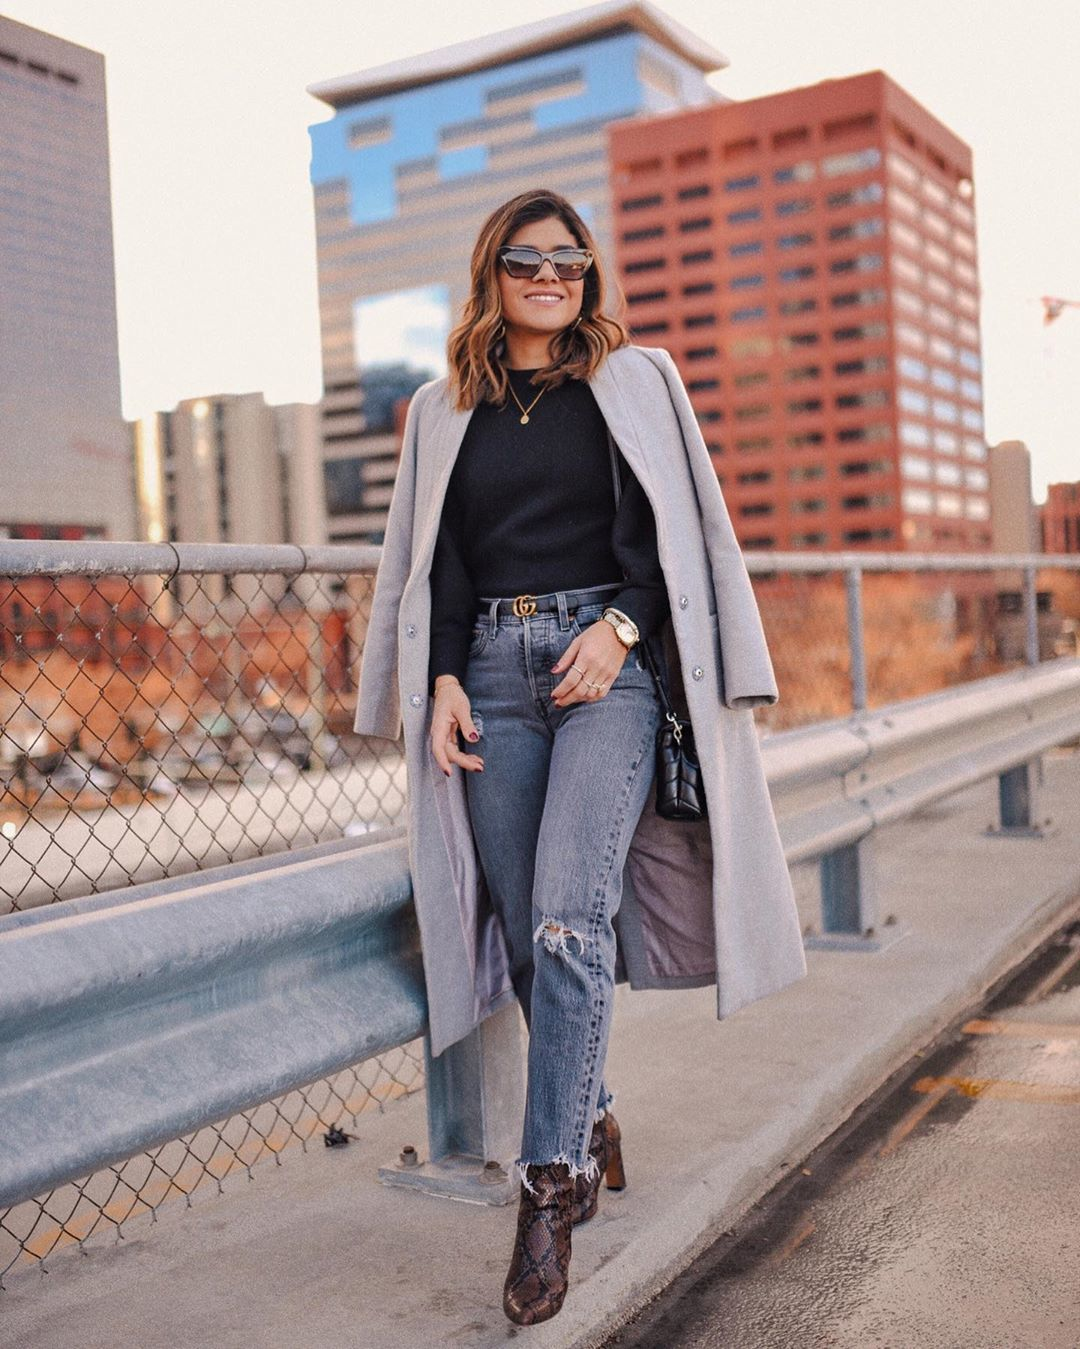 jeans straight jeans ankle boots snake print grey coat black sweater black bag